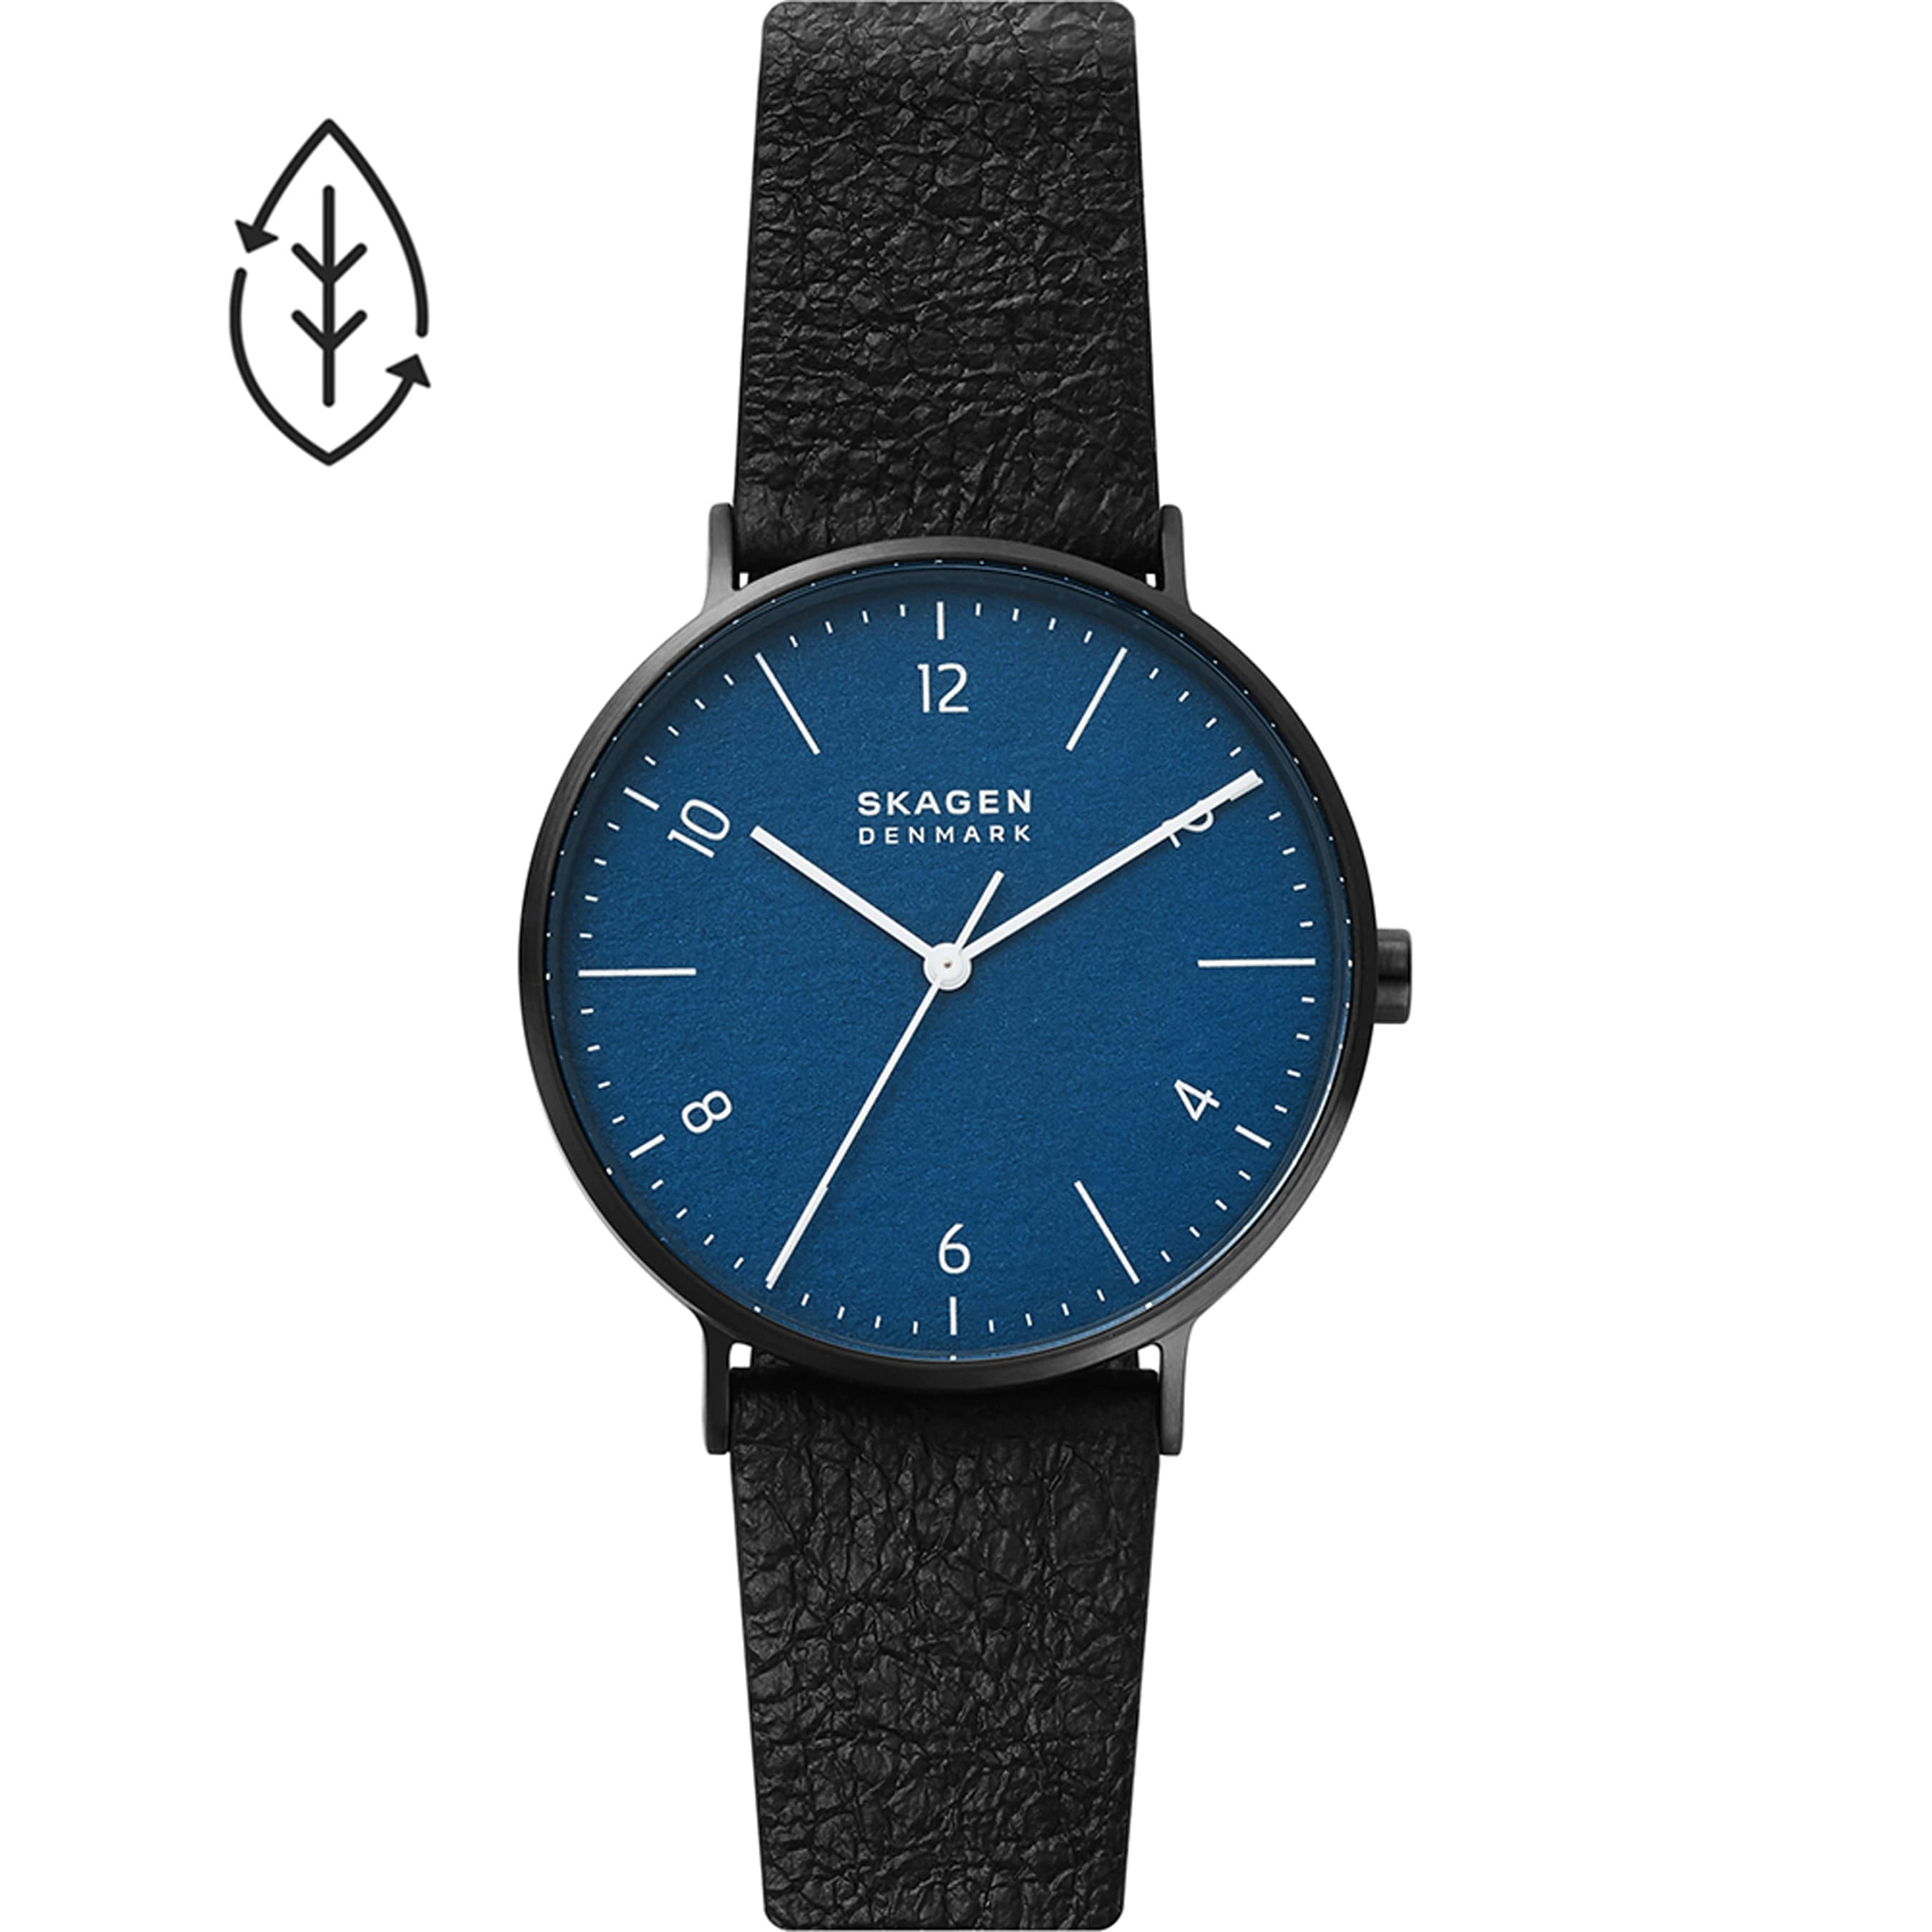 The classic looking sustainable watch by Skagen